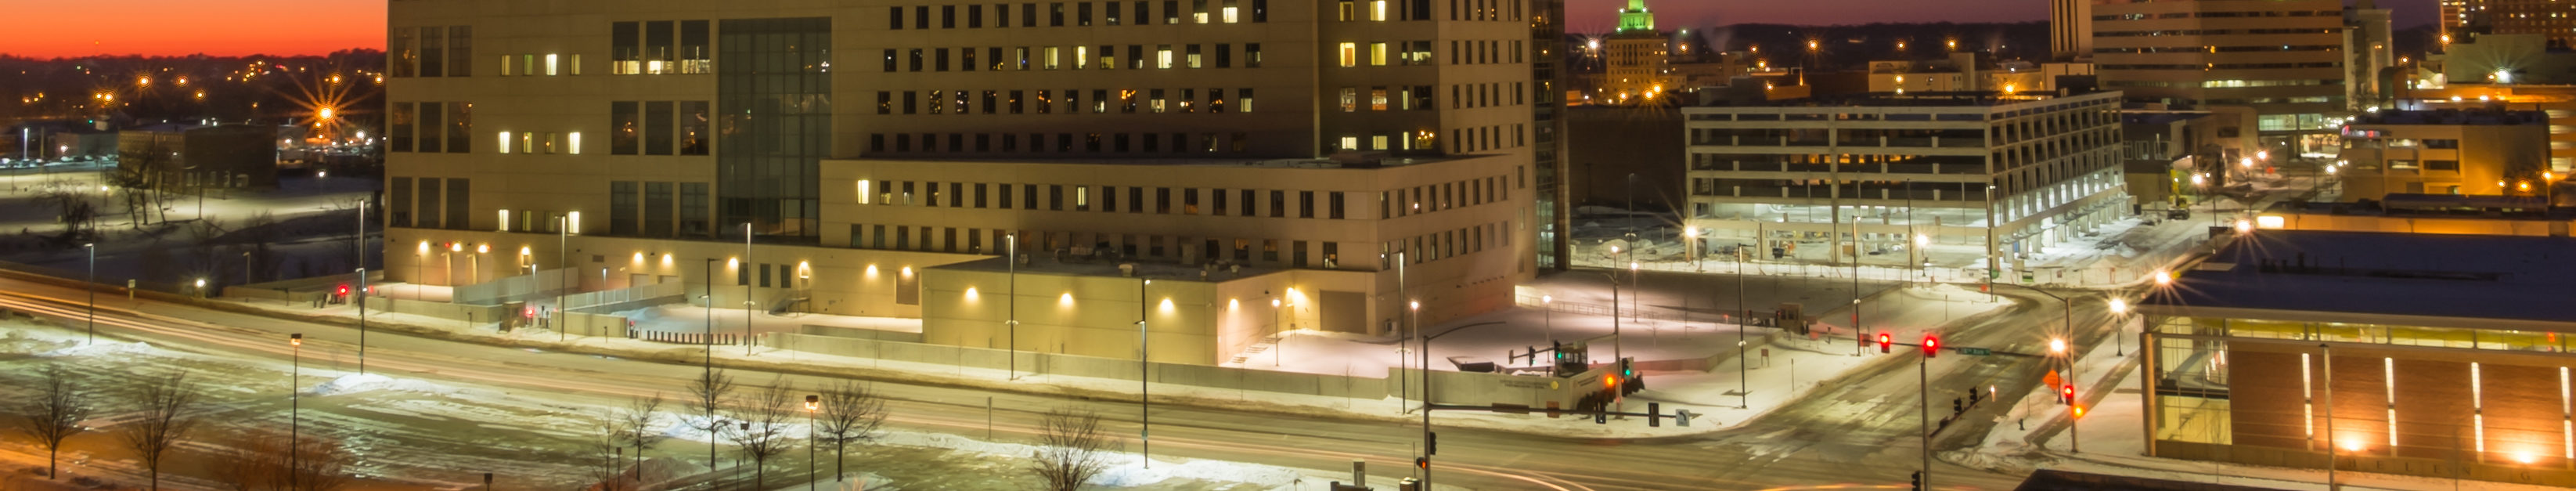 This is an image of downtown Cedar Rapids Iowa where ASTA-USA provides professional translation services.